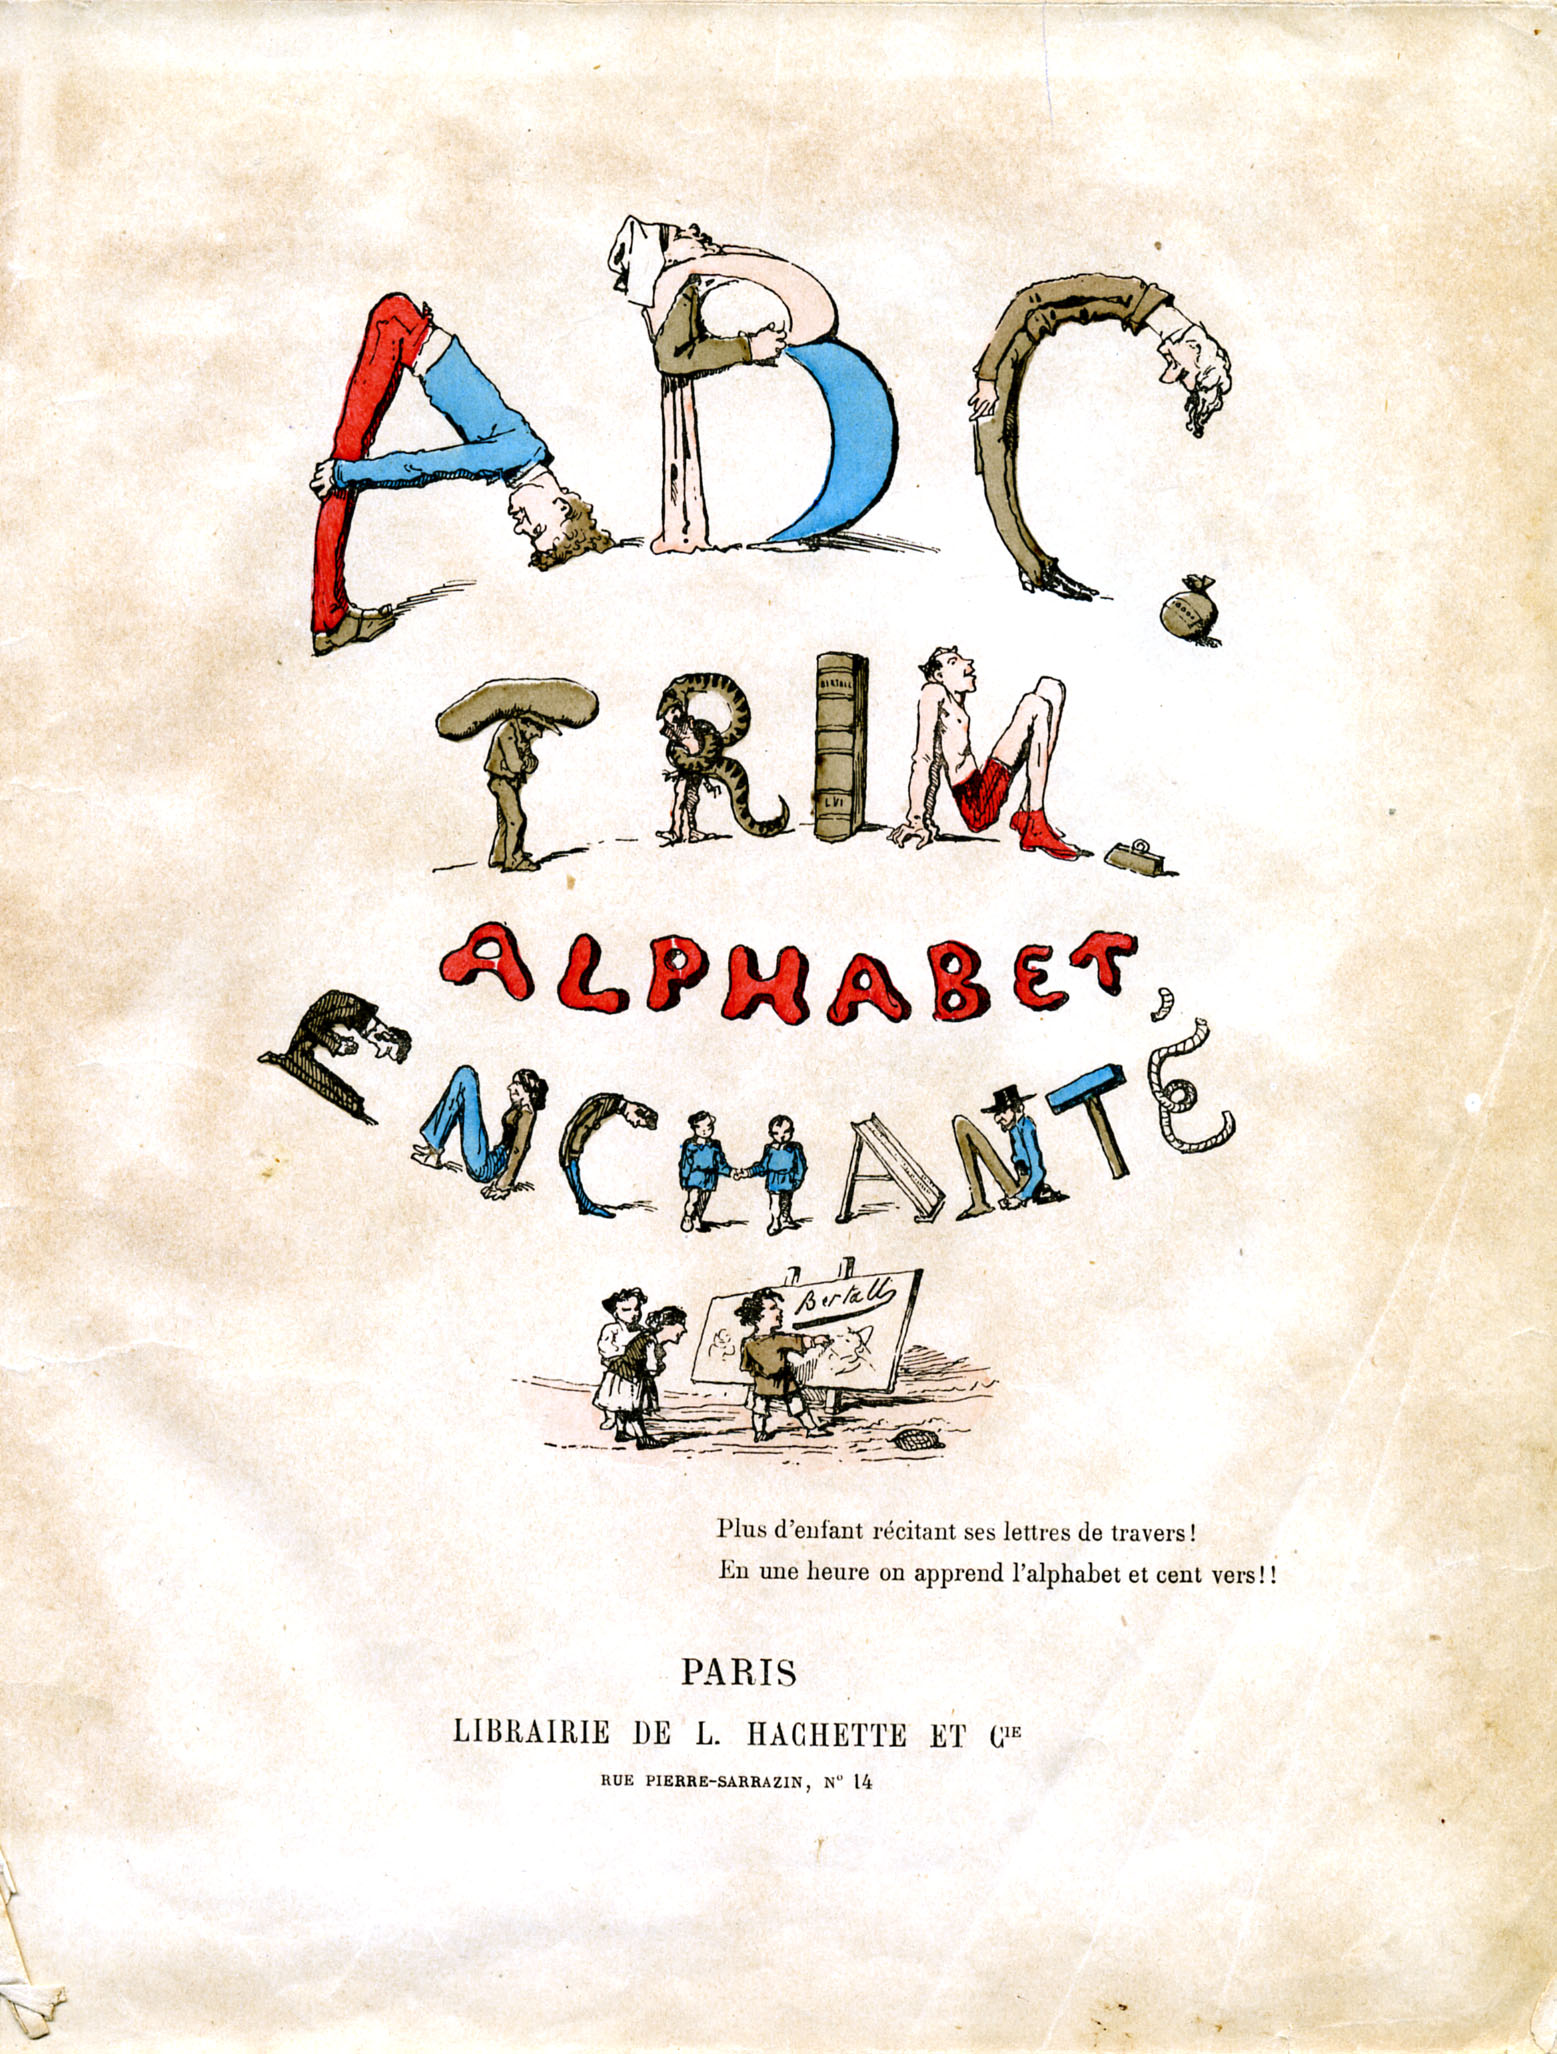 image about Alphabet Booklets Printable titled Alphabet e book - Wikipedia